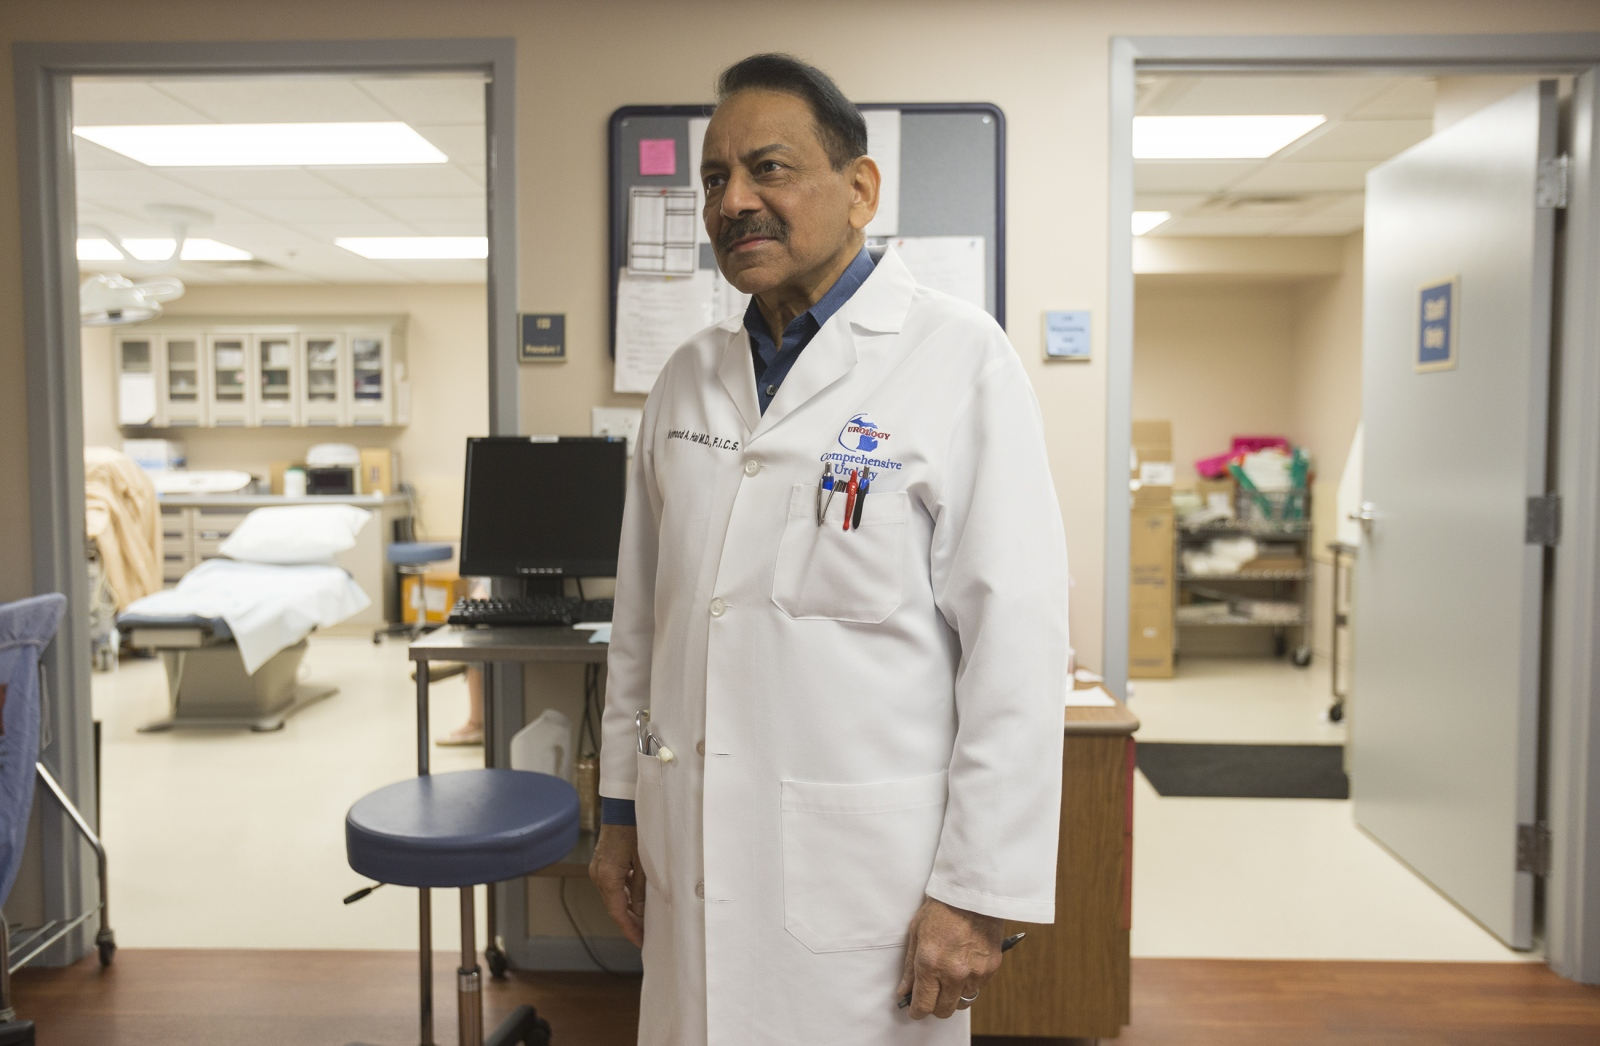 Dr. Mahmood Hai at his practice Comprehensive Urology in Westland, Mich.